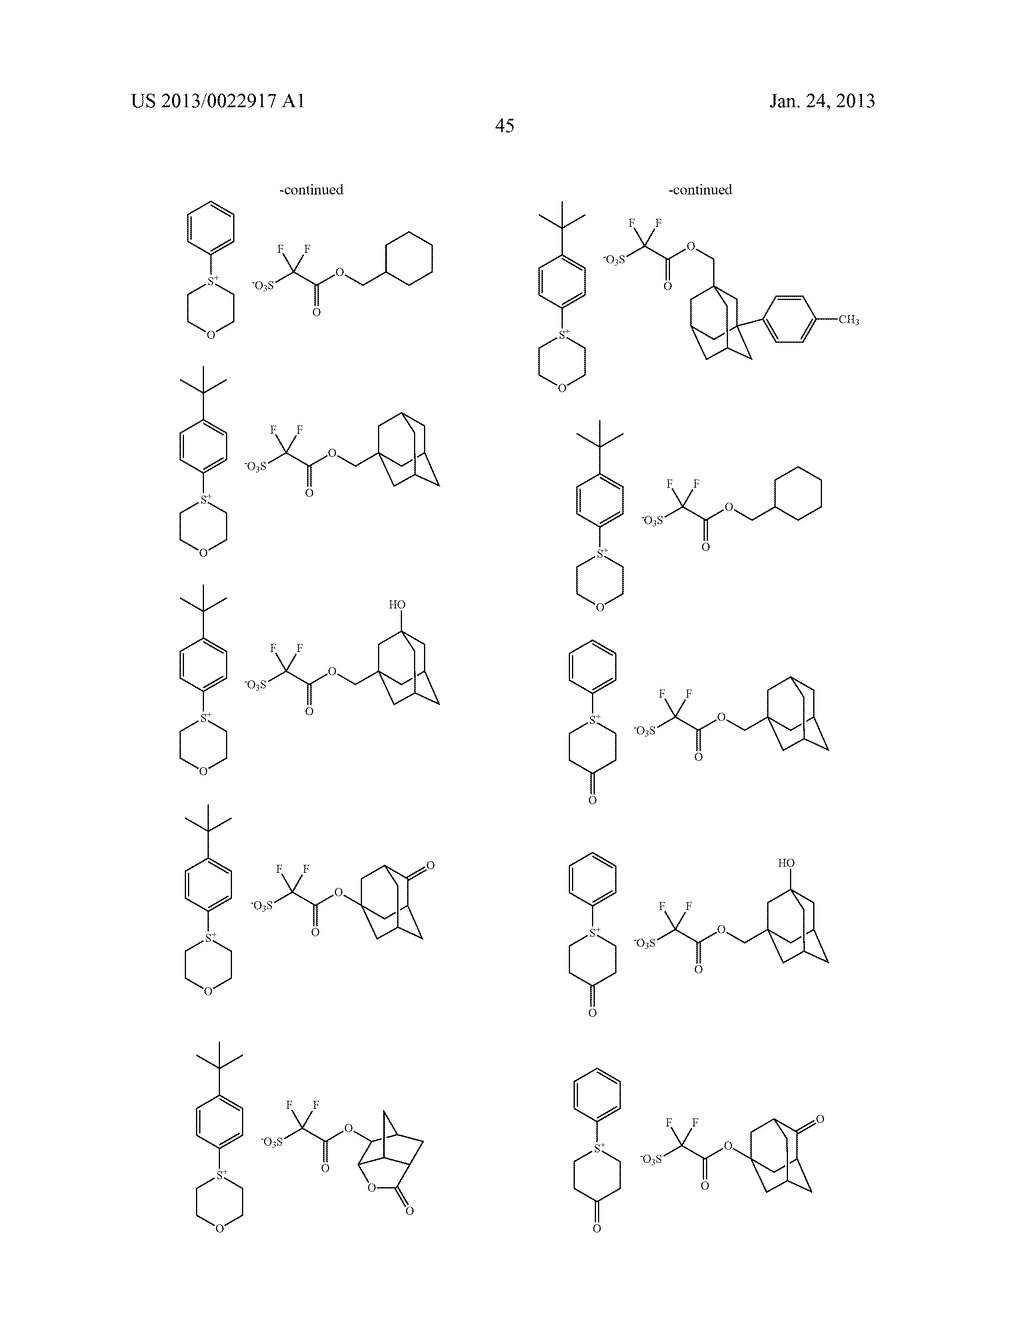 RESIST COMPOSITION AND METHOD FOR PRODUCING RESIST PATTERN - diagram, schematic, and image 46